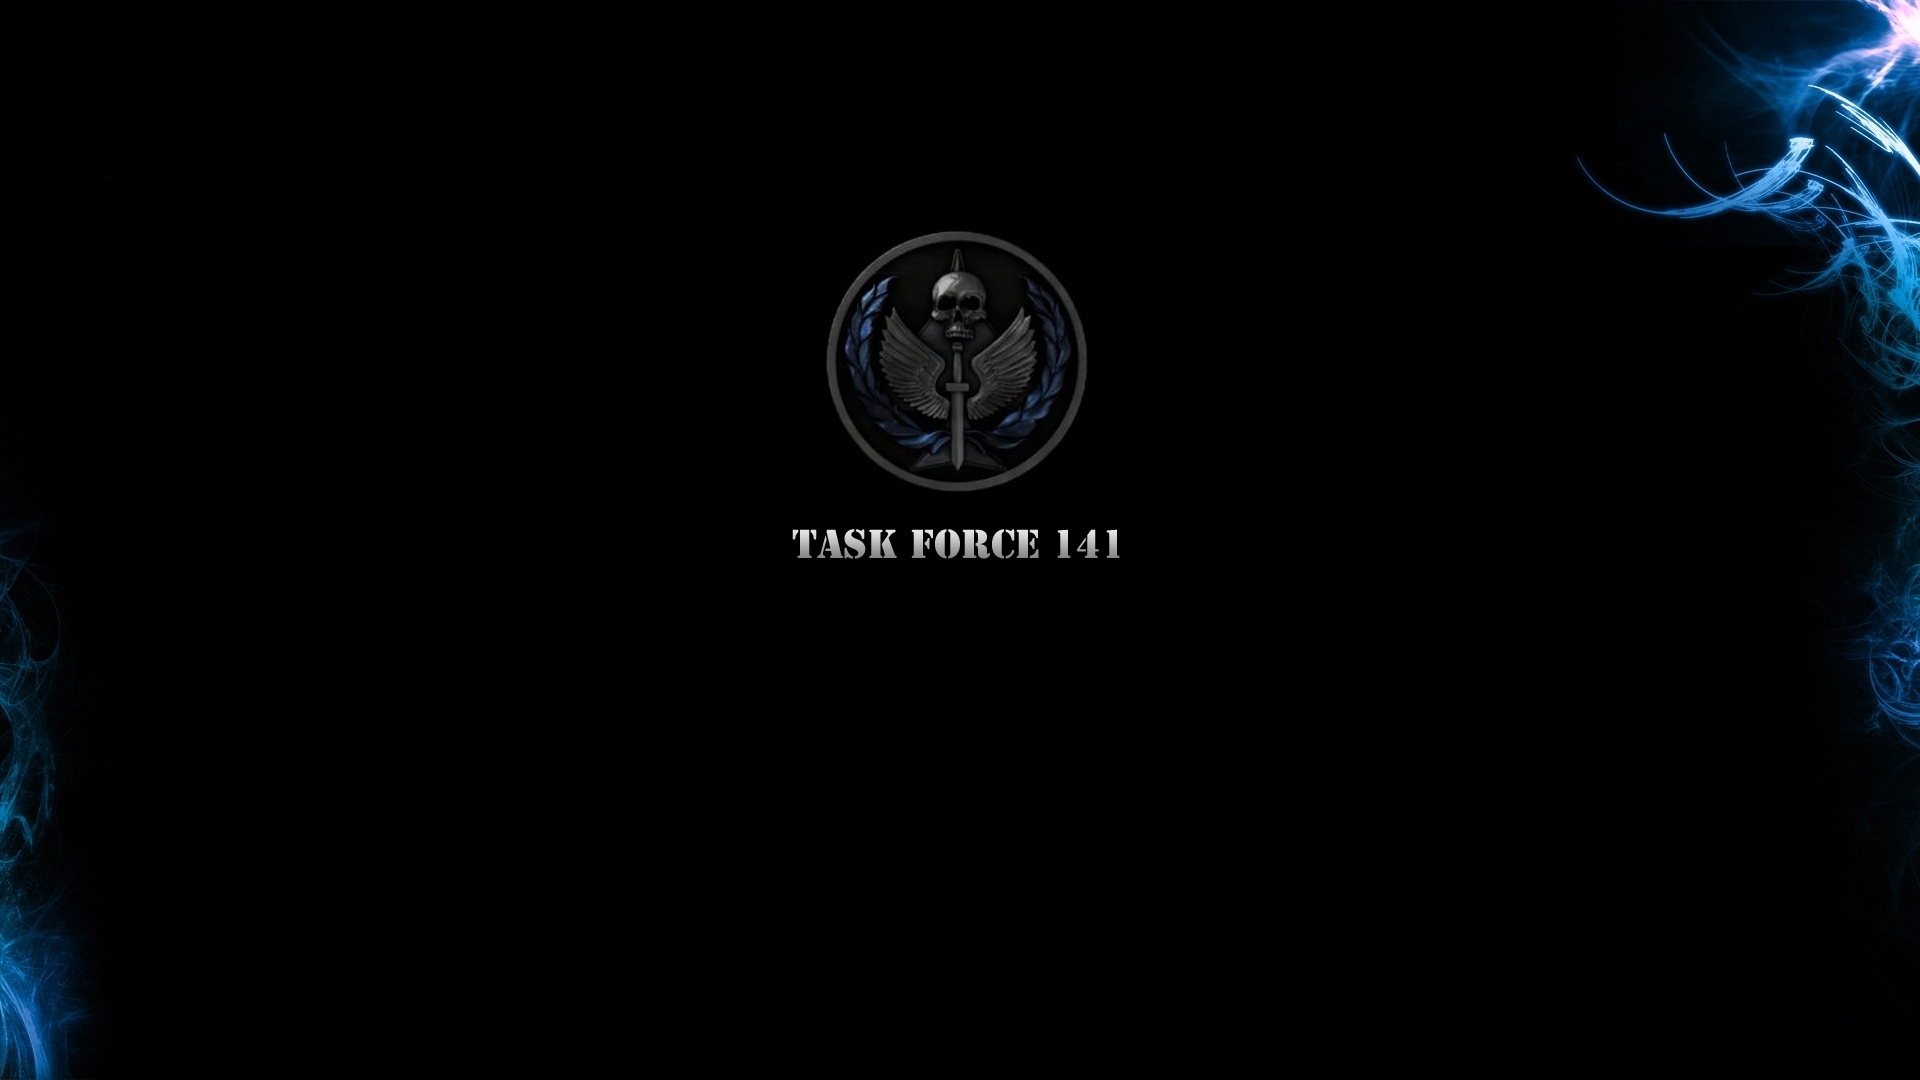 Task Force 141 Wallpapers 1920x1080